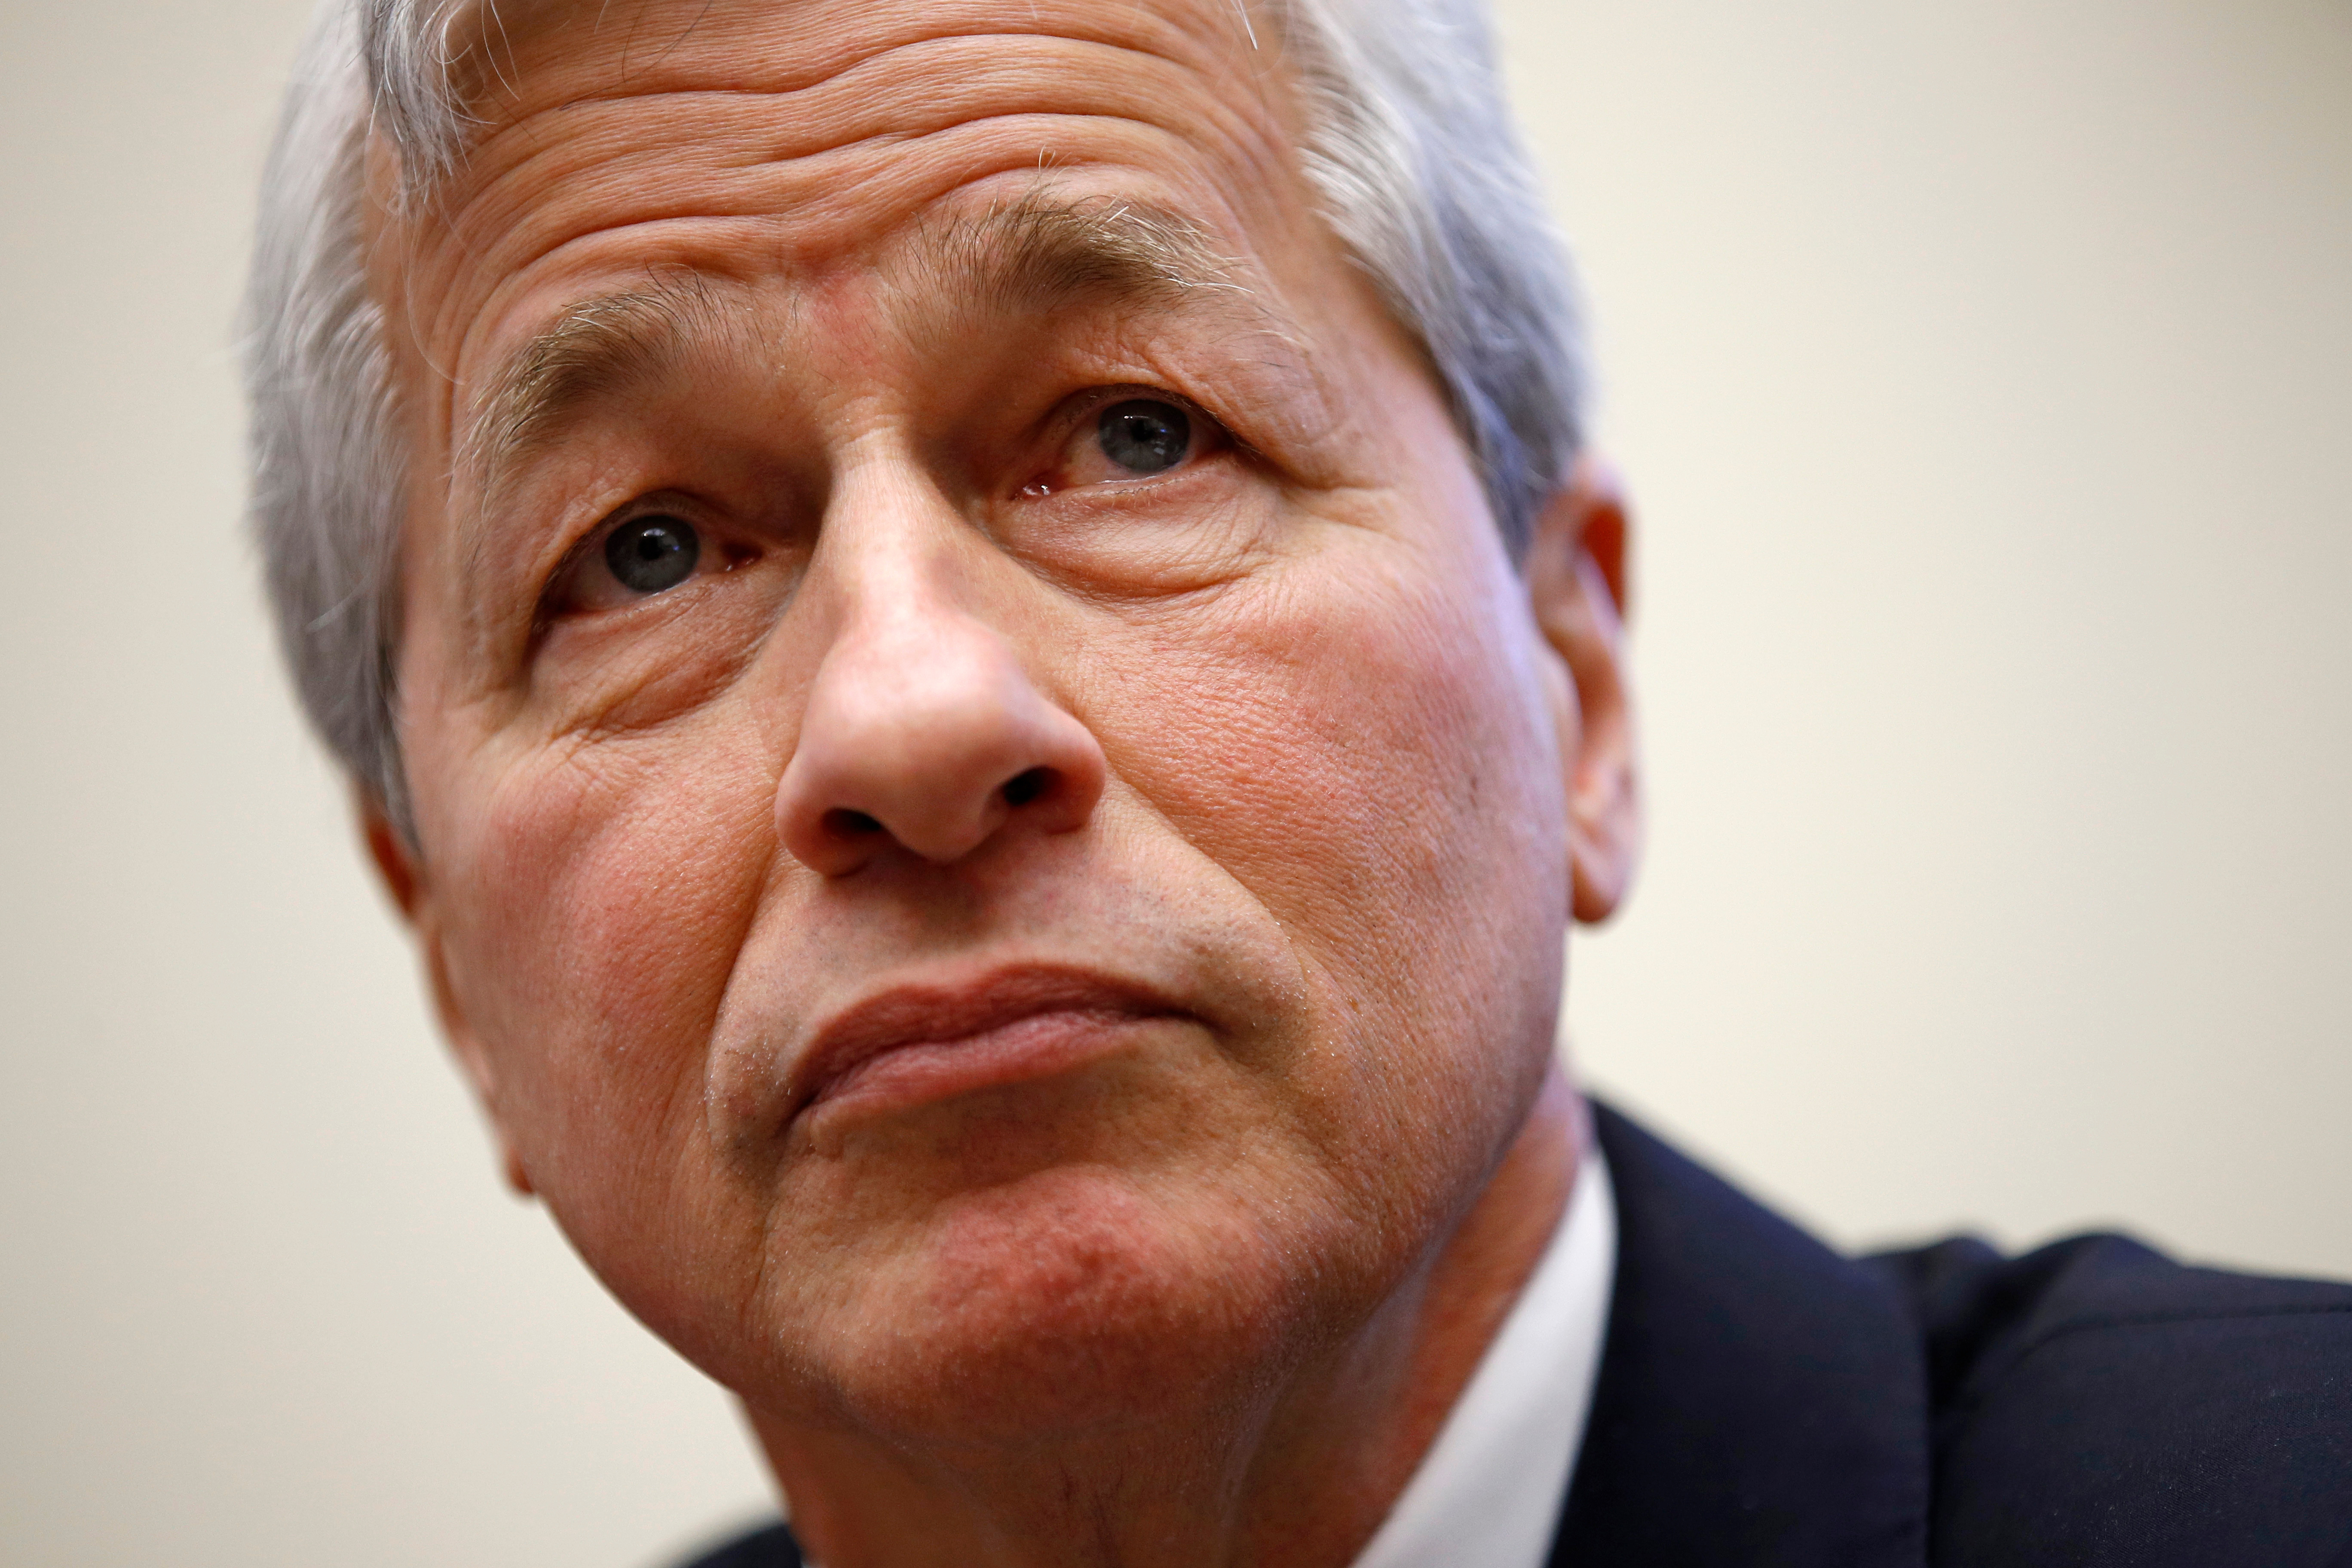 JPMorgan Chase chairman and CEO Jamie Dimon testifies before the House Financial Services Committee during a hearing, on Capitol Hill in WashingtonBig Banks Congress, Washington, USA - 10 Apr 2019